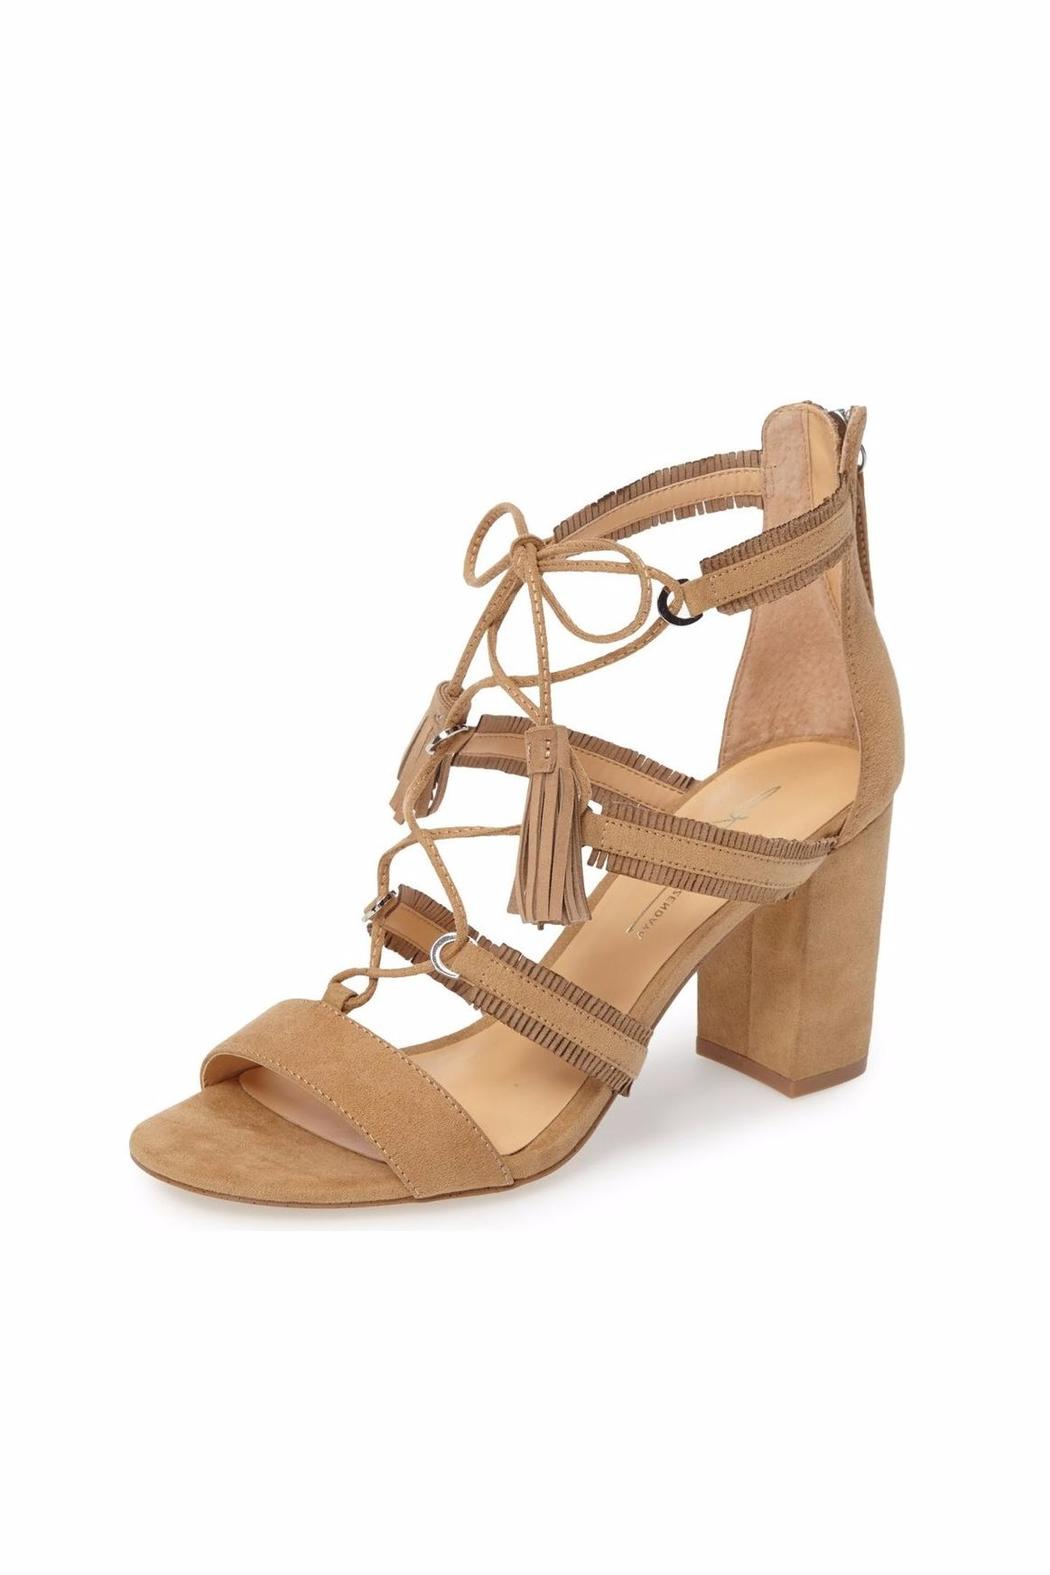 Daya by Zendaya Meadow High Heels - Front Cropped Image